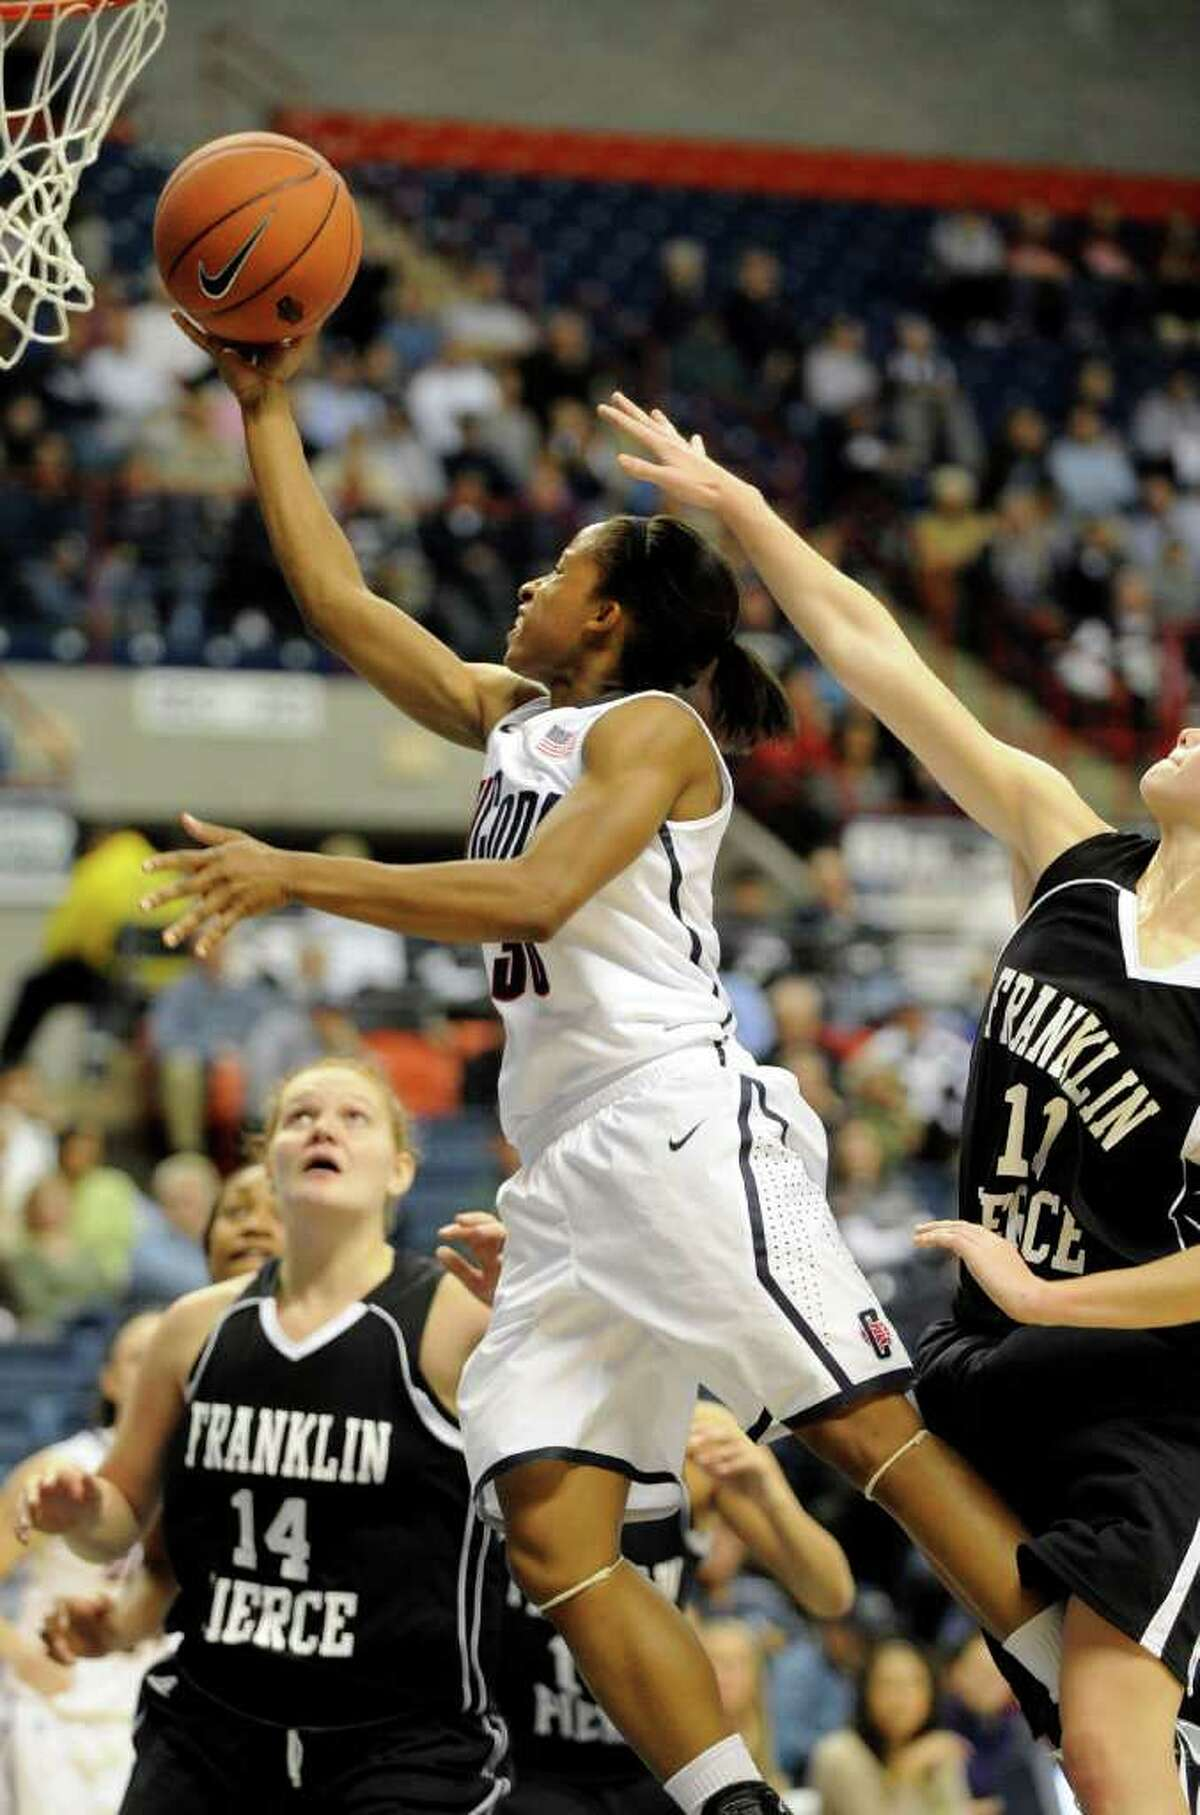 Connecticut's Lorin Dixon, center, drives past Franklin Pierce's Brooke Coderre (11) as Jessica Hurd (14) looks on during the second half of their exhibition NCAA women's college basketball game in Storrs, Conn., on Thursday, Nov. 4, 2010. Connecticut won the game 112-41. (AP Photo/Fred Beckham)